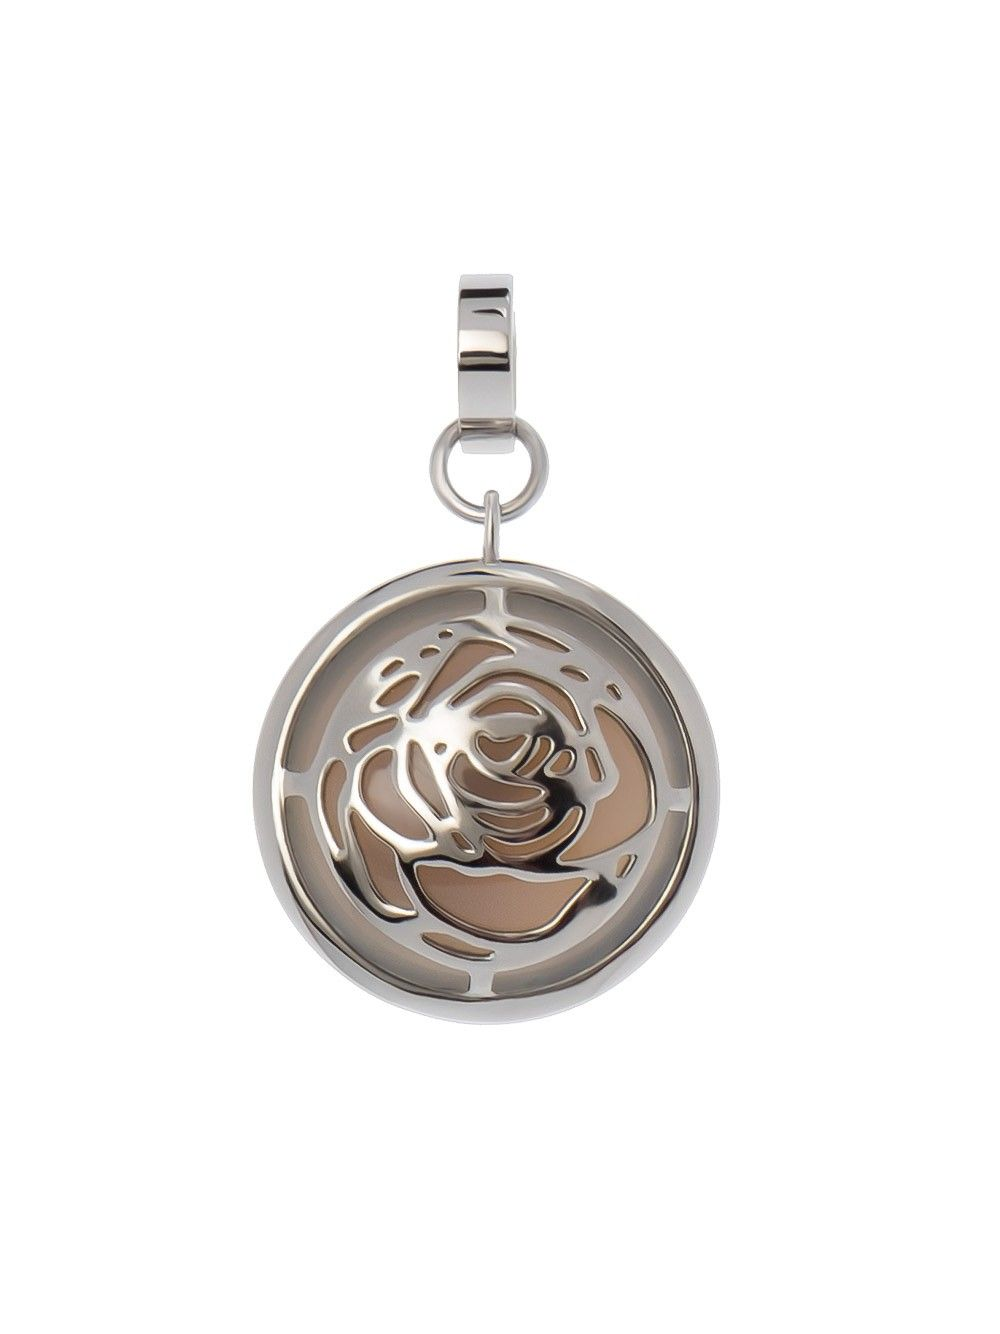 """Two face pendant """"Scent"""" by Sofia Bobone featuring shining stainless steel, grey agate shimmering through a rose motif or only a light cabochon grey agate."""